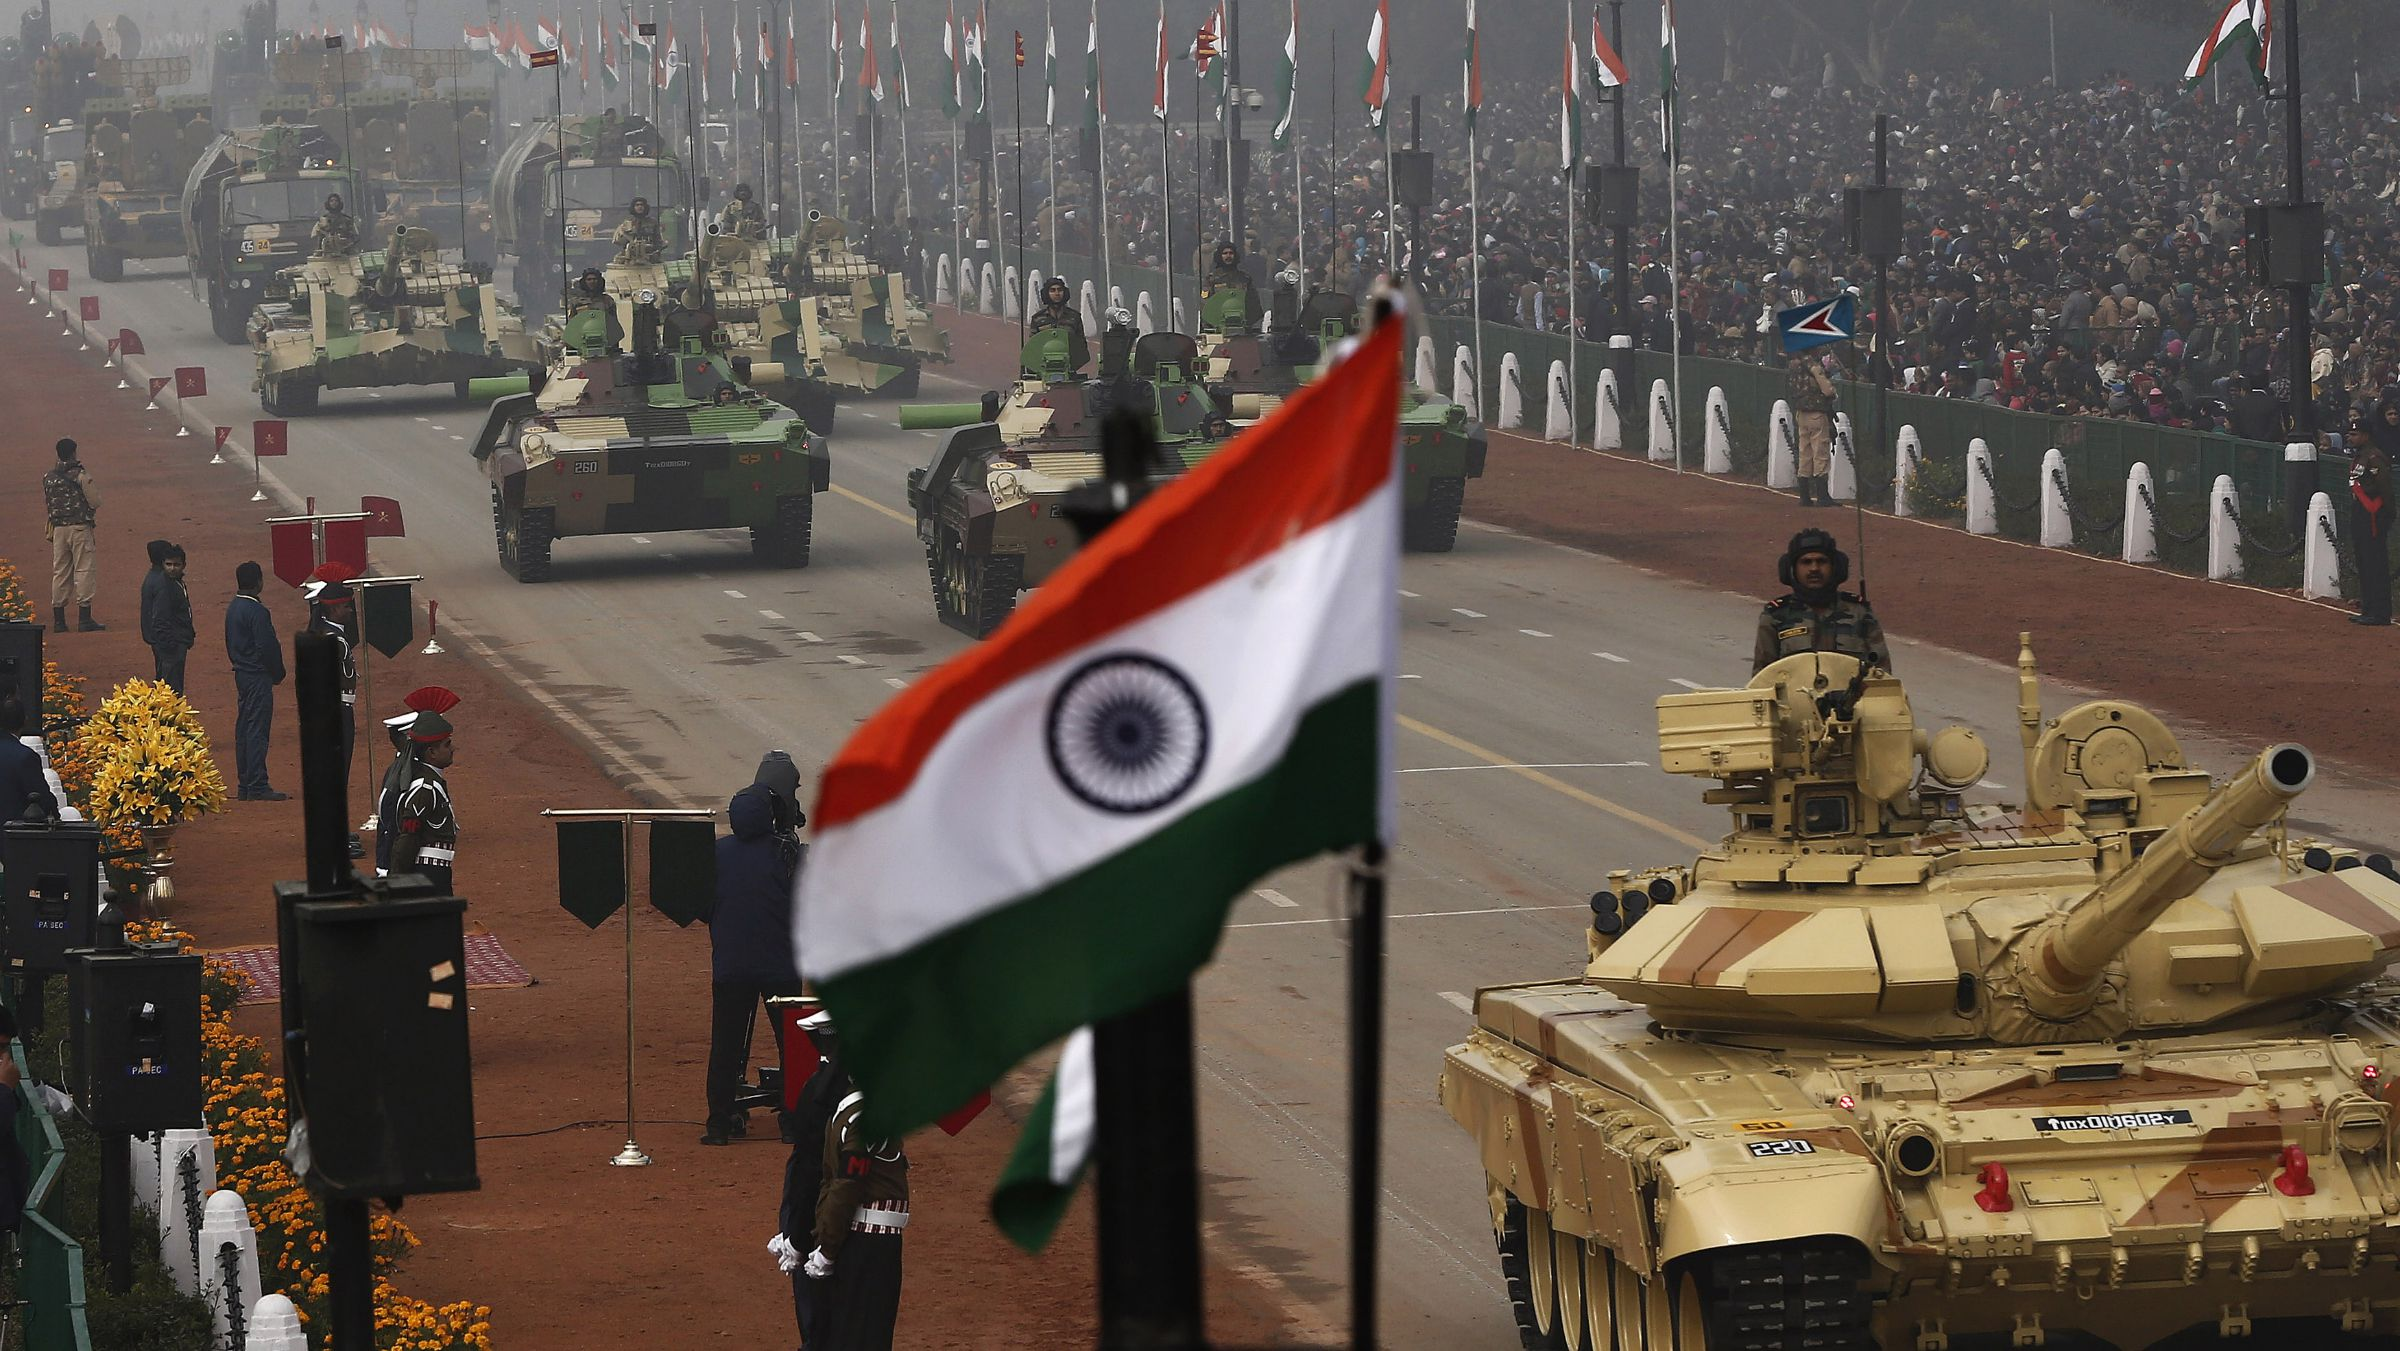 Indian Army's Arjun MK-I tanks are driven for display during the Republic Day parade in New Delhi